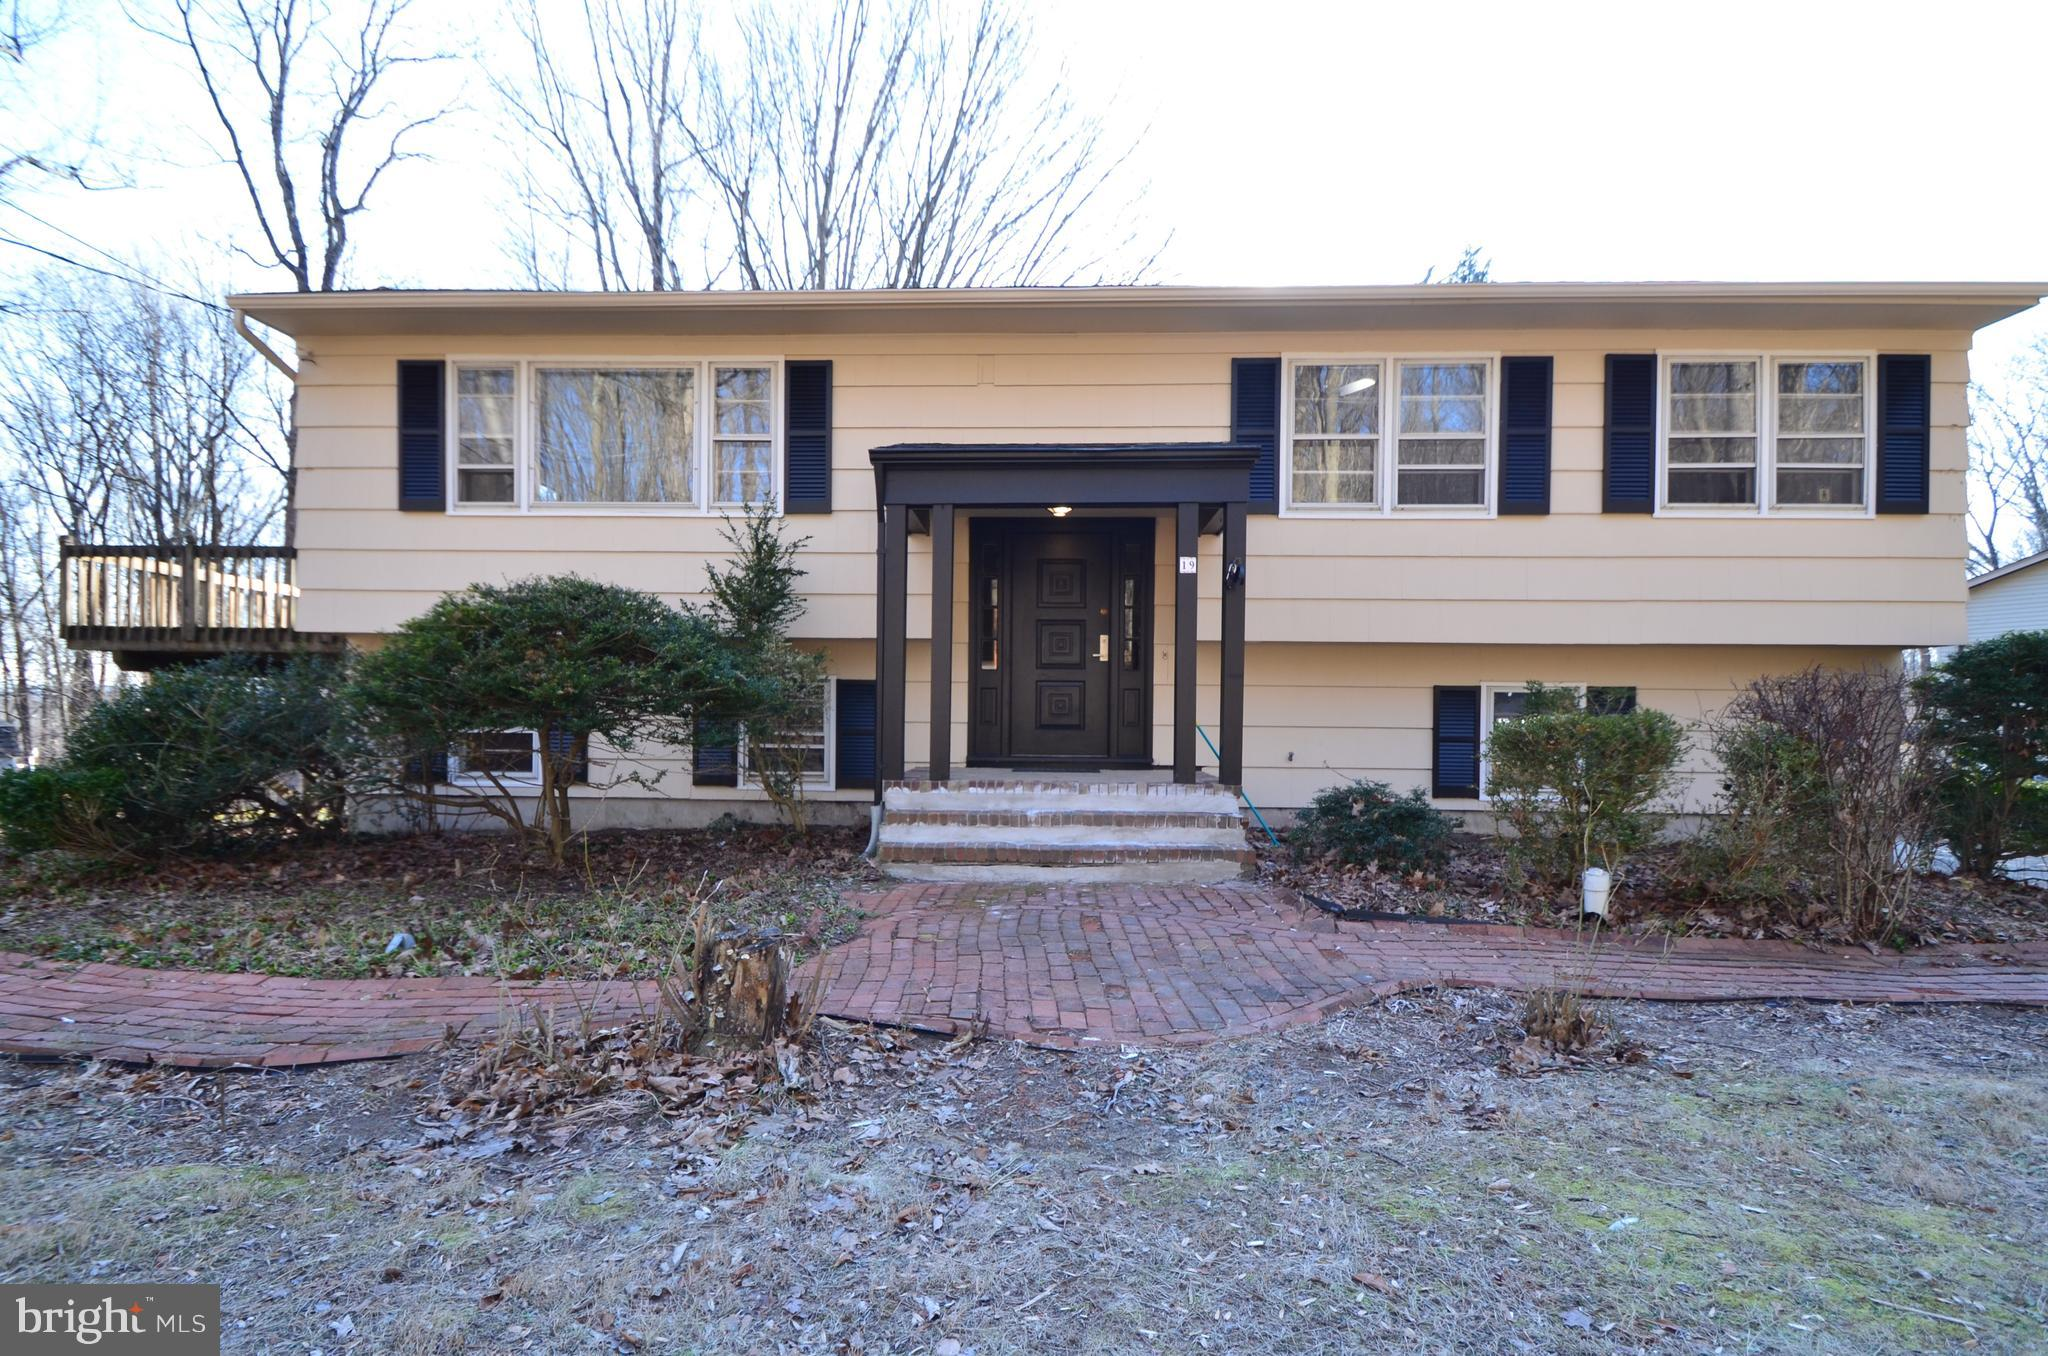 19 BUD LAKE HEIGHTS ROAD, BUDD LAKE, NJ 07828